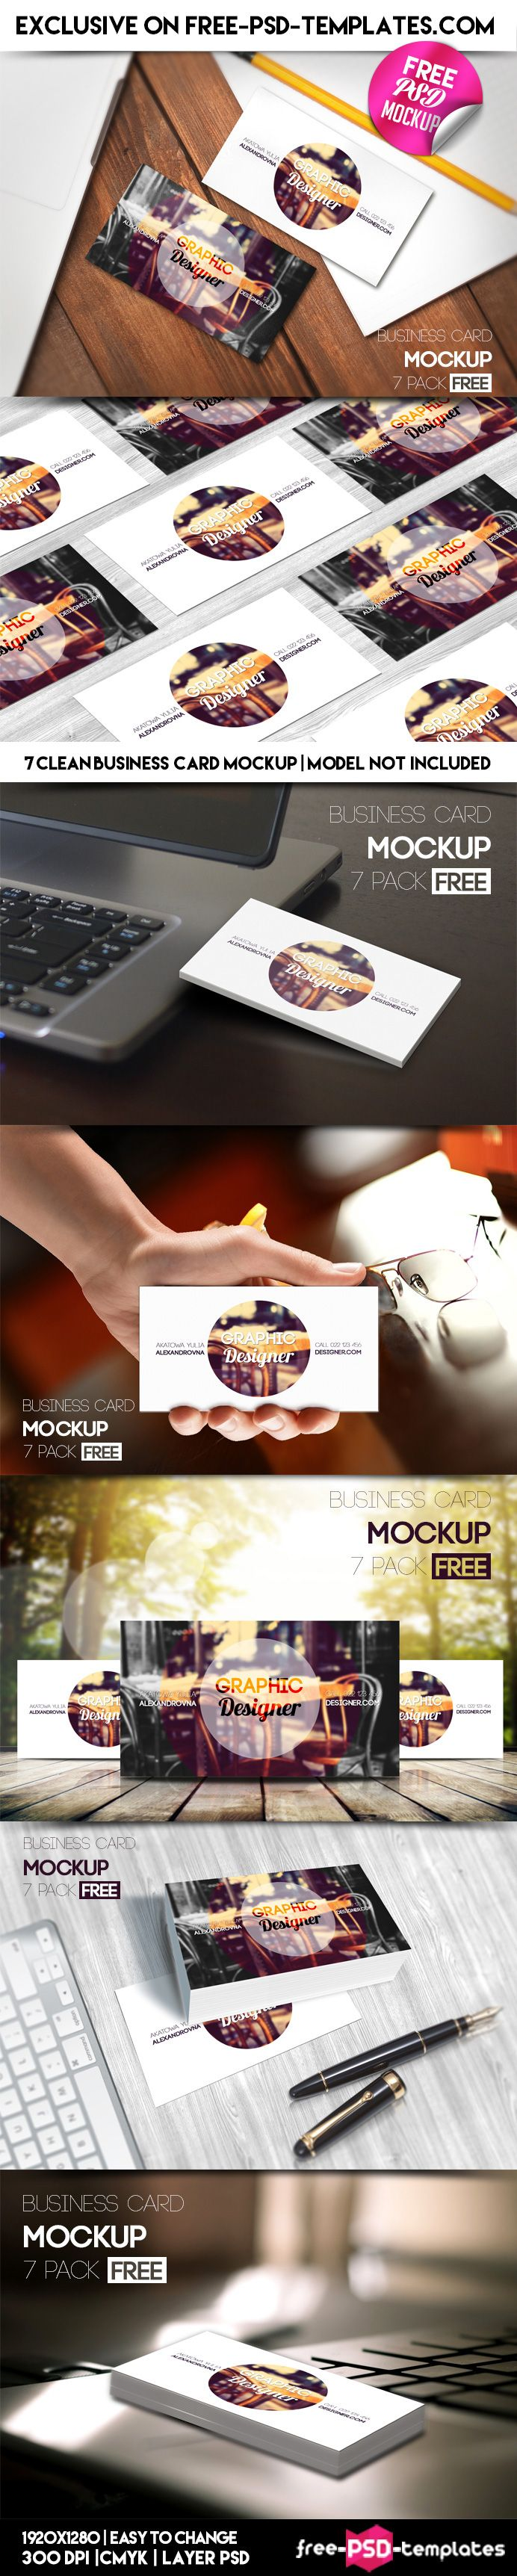 This very beautiful and elegant Free PSD Business Card MockUp is the absolute exclusive template from Free-PSD-Templates! Download it, be interesting for the people you want to show your works and ideas.Download Absolutely Free